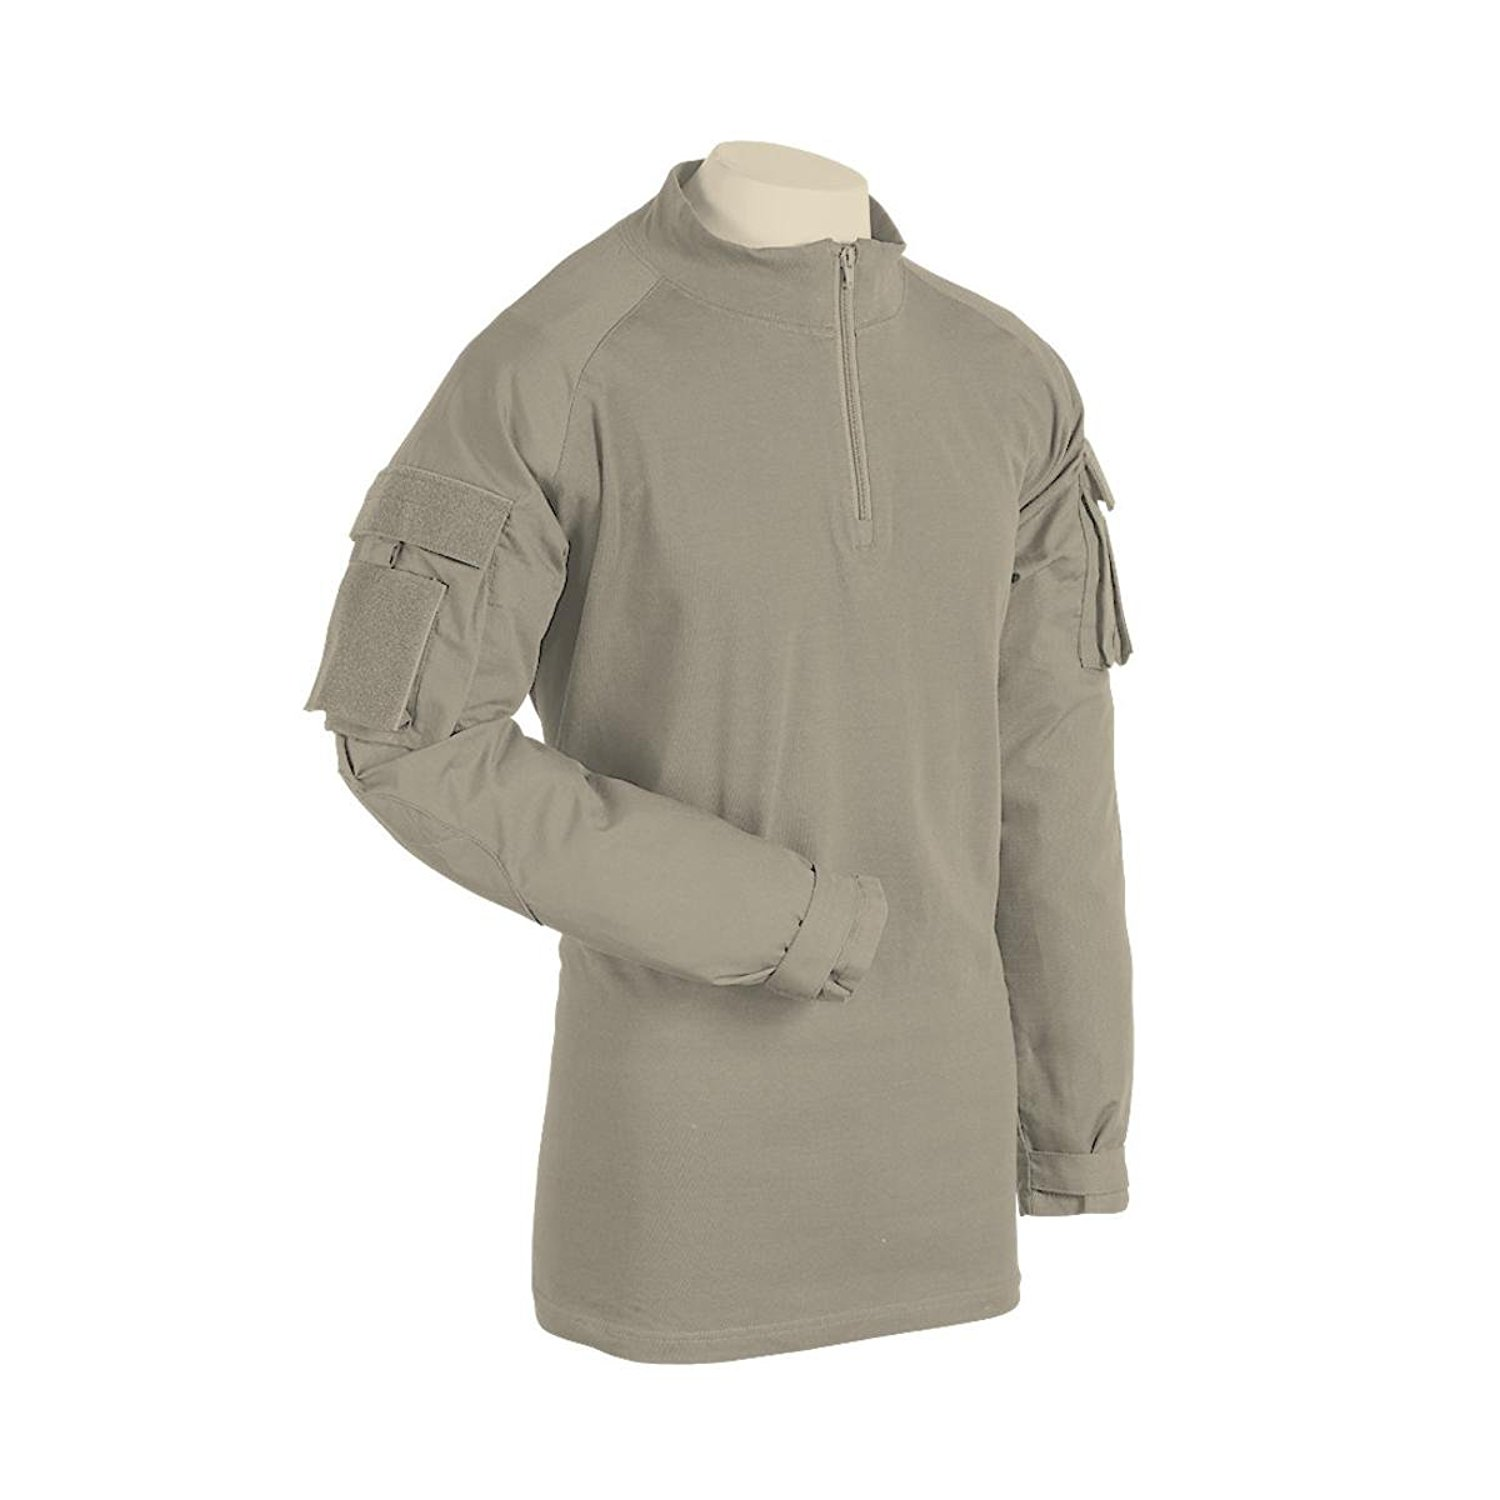 01-9582 Combat Shirt with Zipper, Gray, Tan 019582 Gray S...